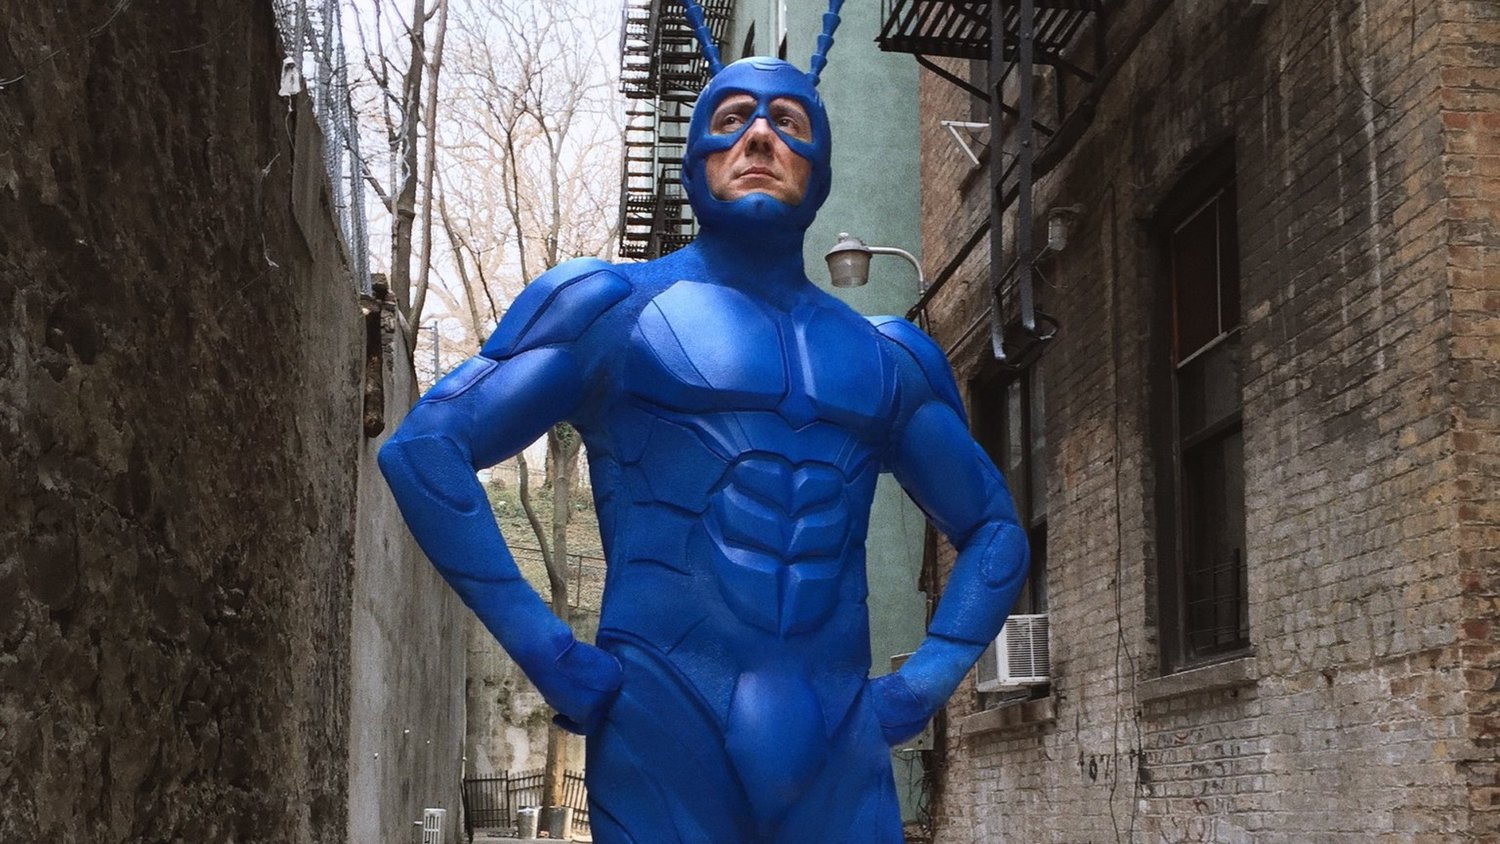 New Costume Design Revealed for Amazon Series THE TICK